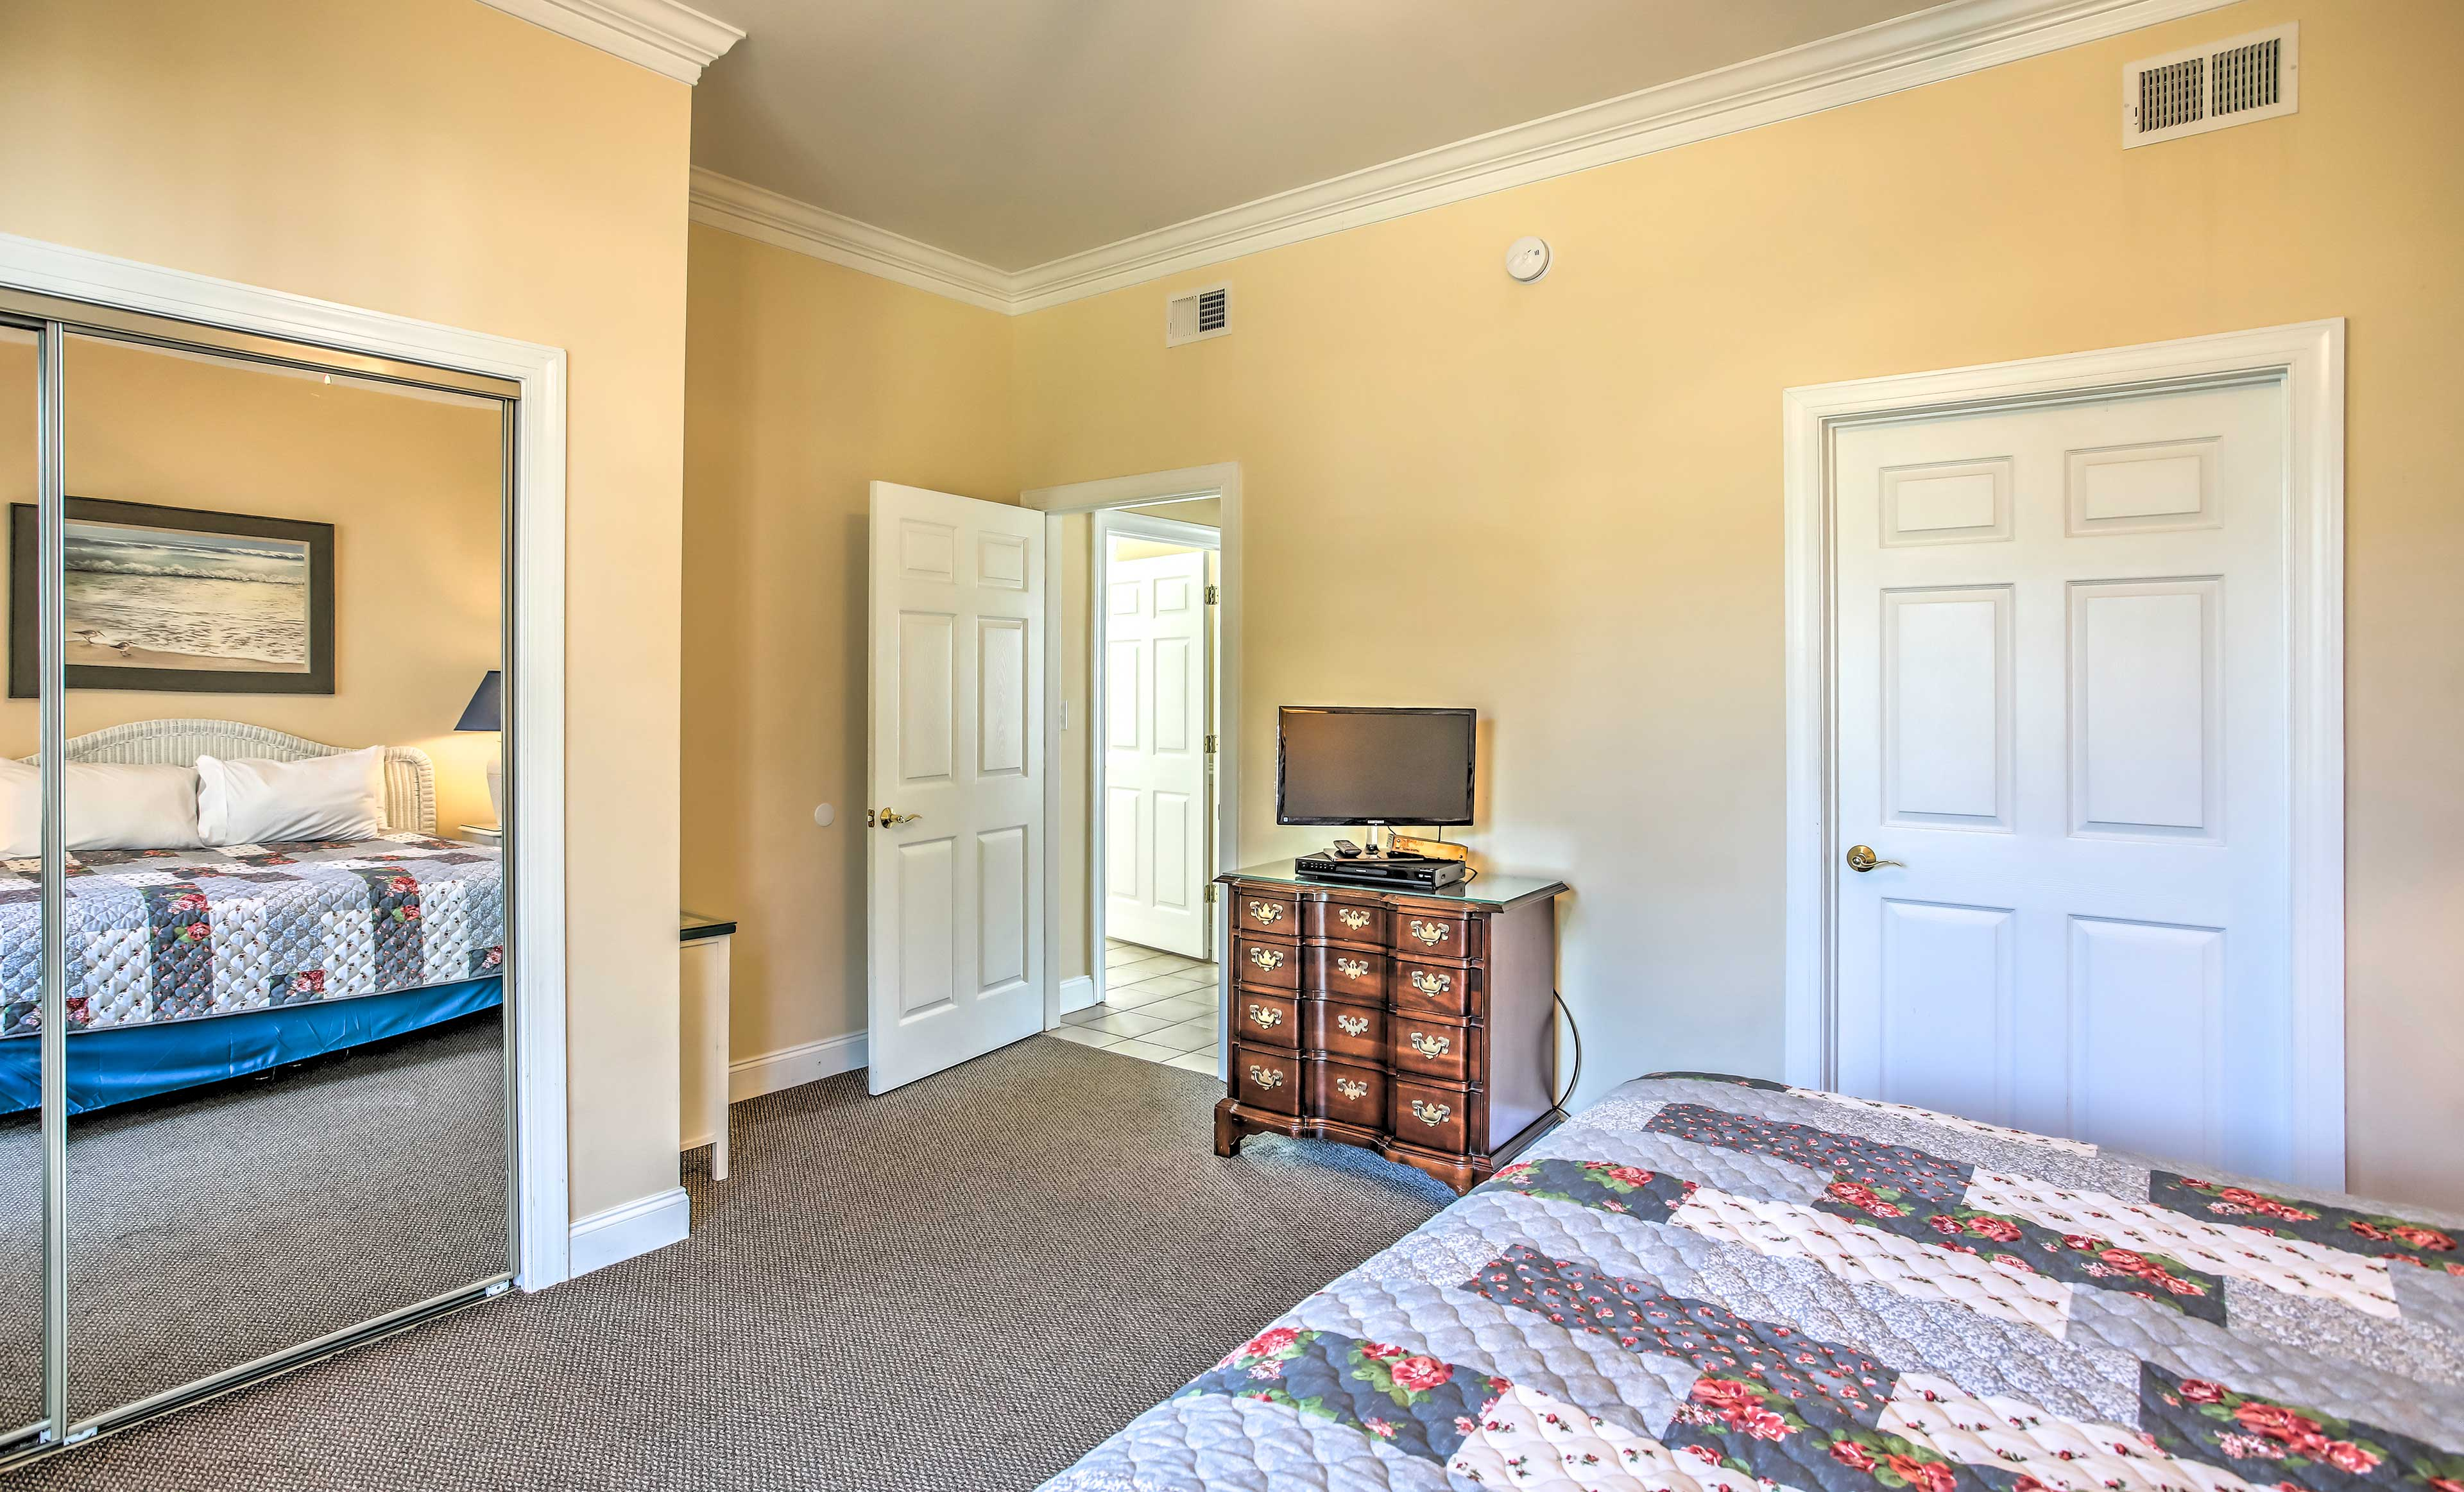 The master bedroom offers a TV and access to the patio.